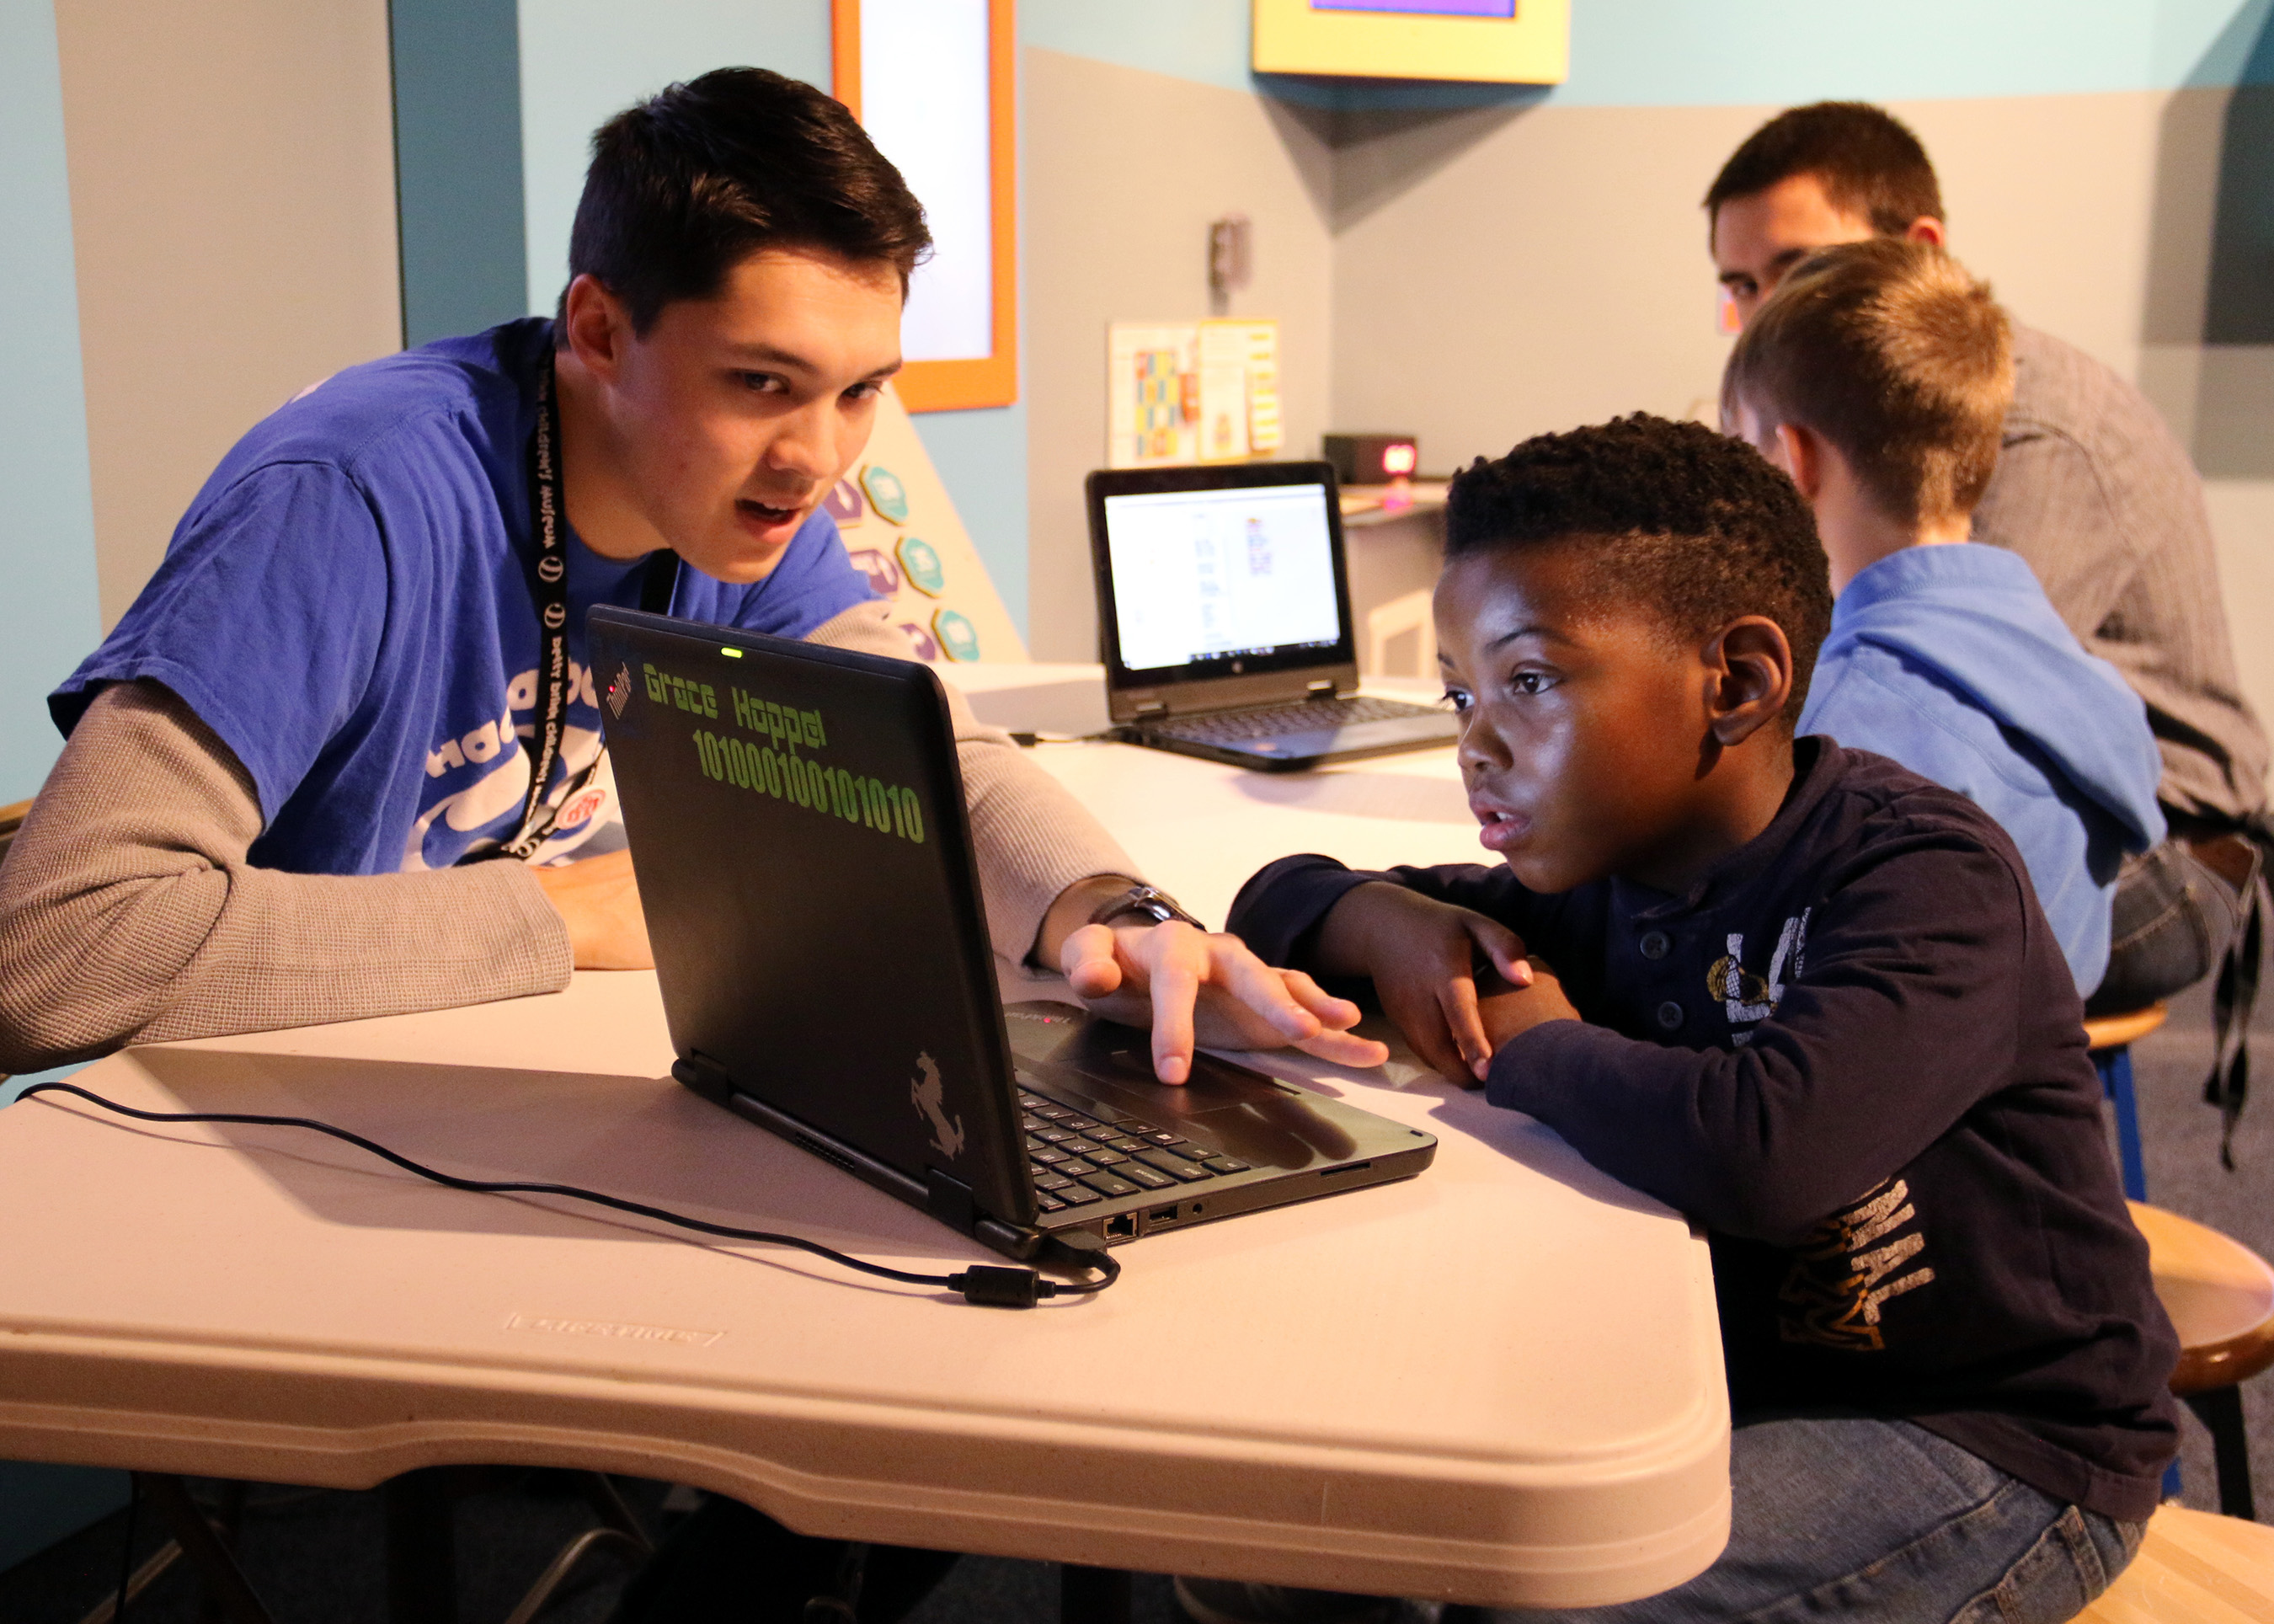 Betty Brinn Children's Museum's Be a Maker space offered hands-on coding activities focused on data collection and visualization, computer science terminology, quick puzzles and games.